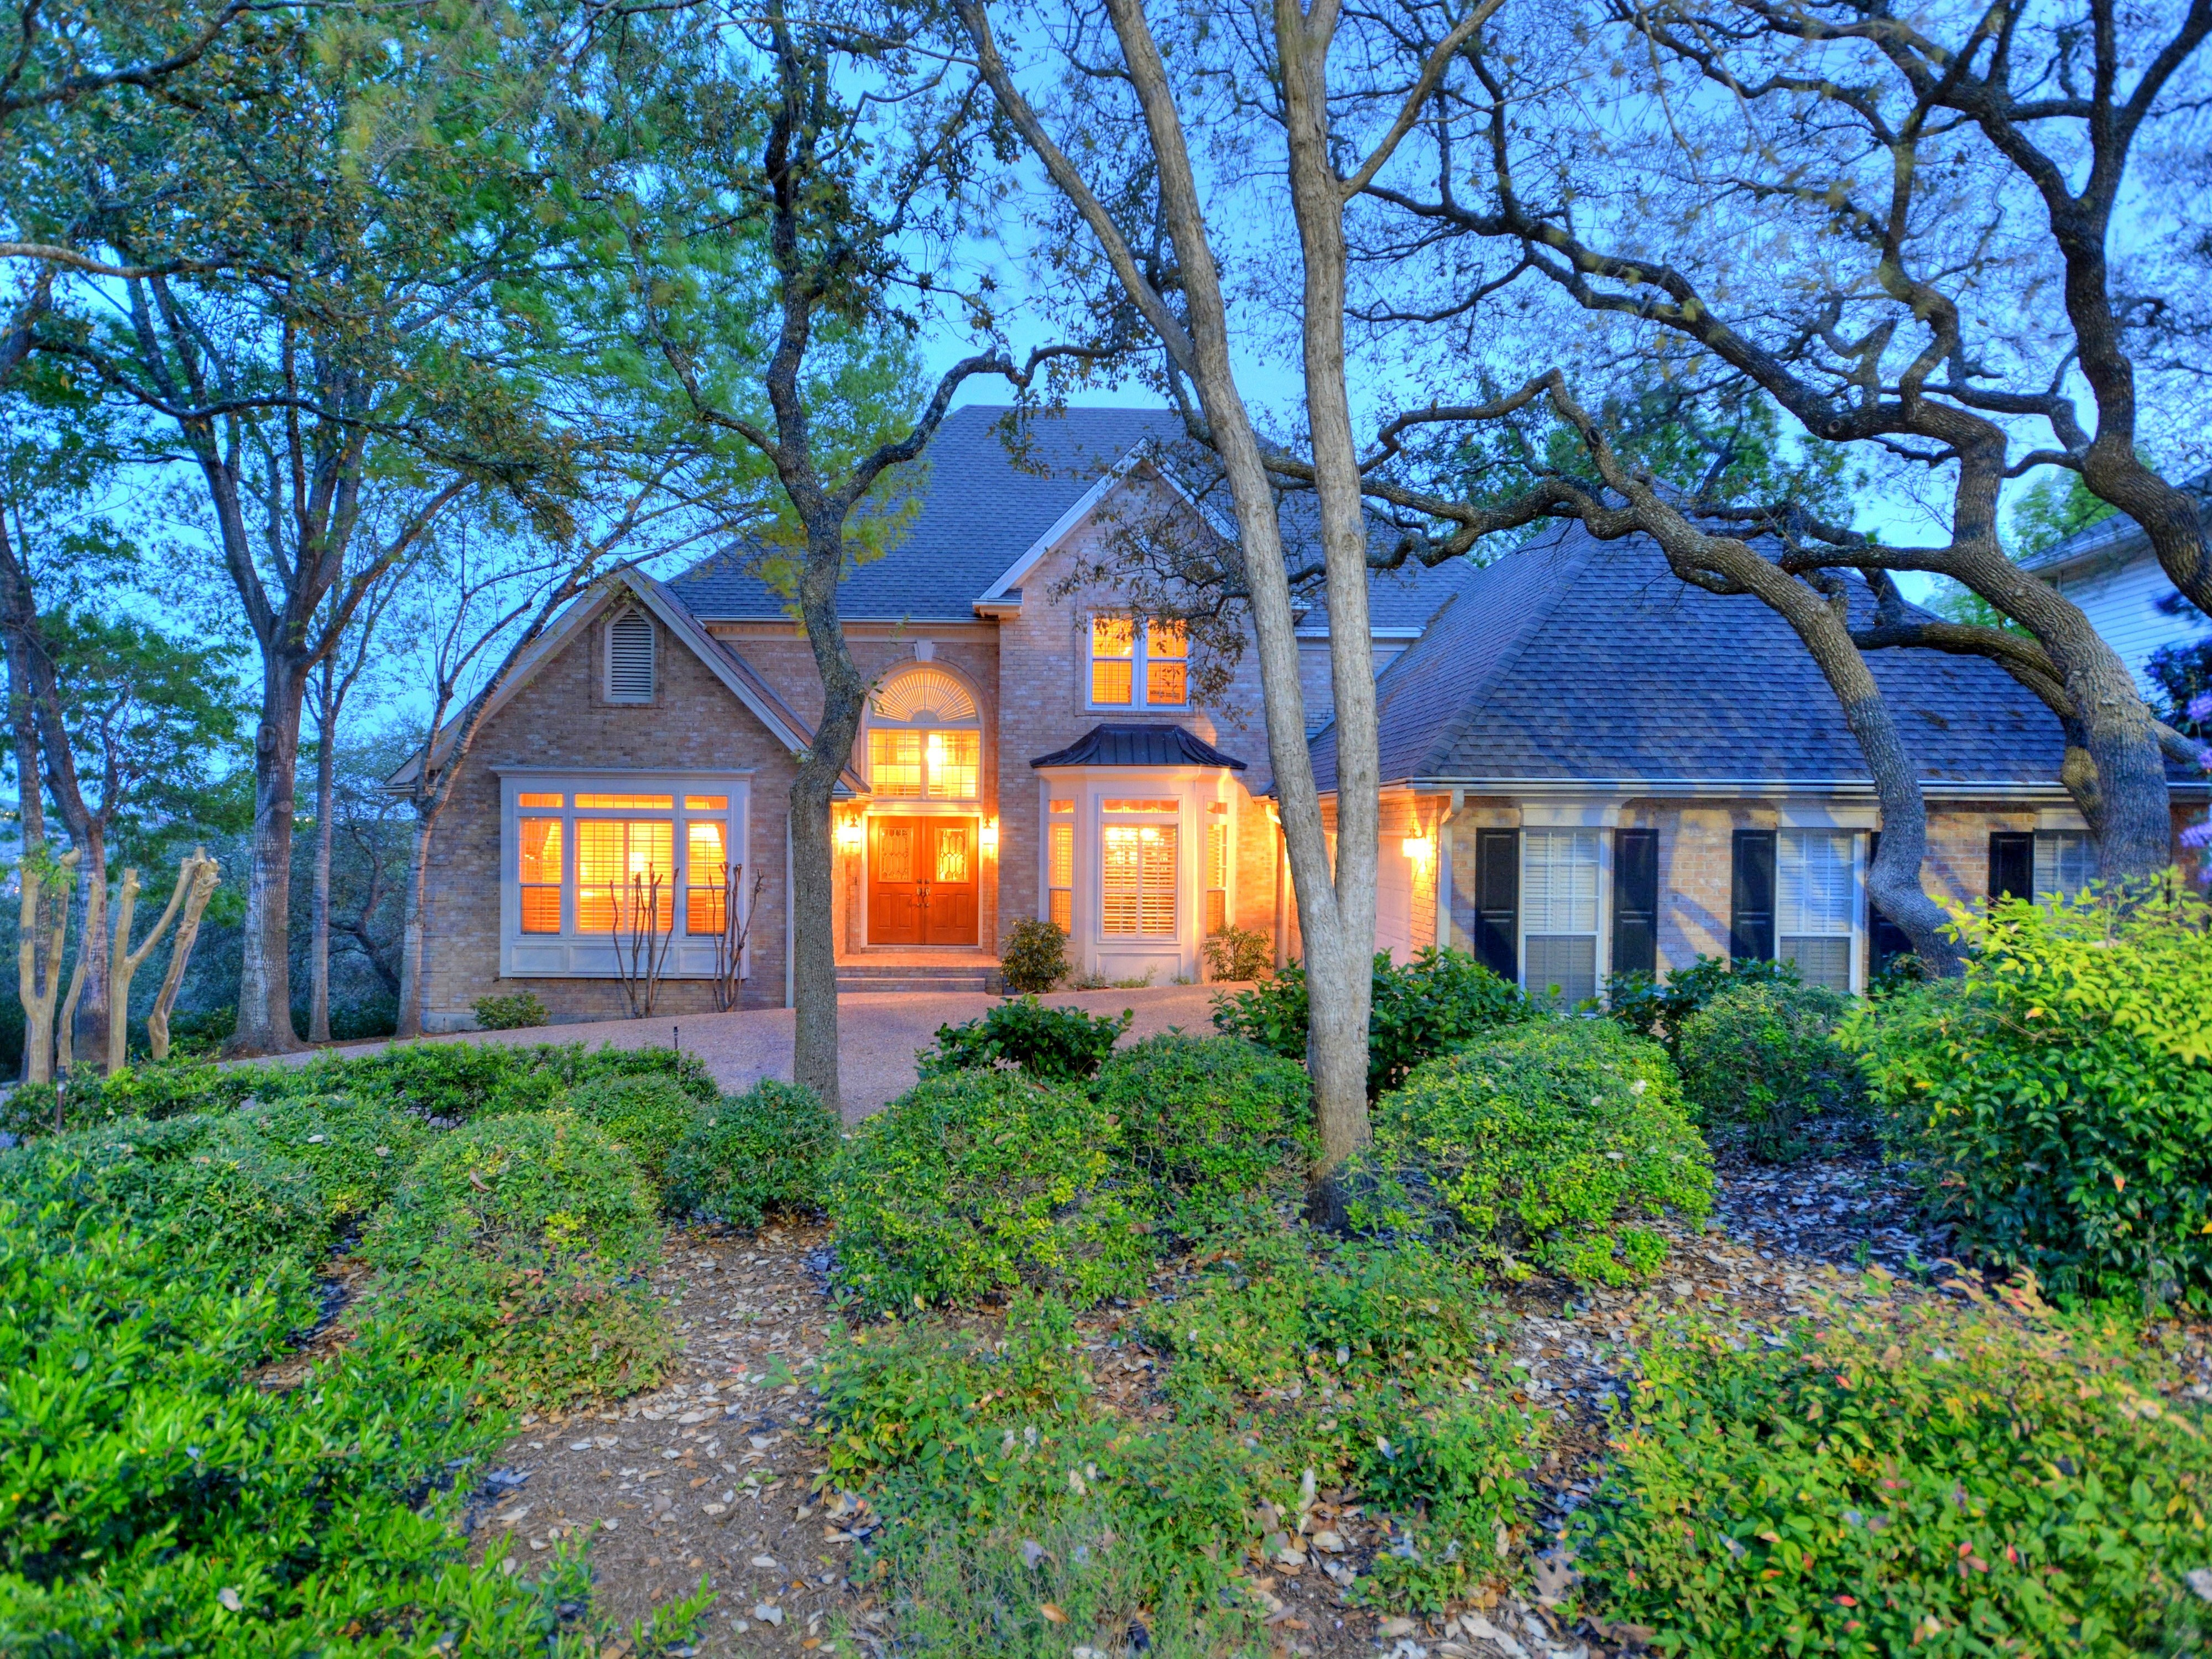 Single Family Home for Sale at Cat Mountian Home with Gorgeous Lake Austin Views 4703 Lookout Mountain Cv Austin, Texas 78731 United States